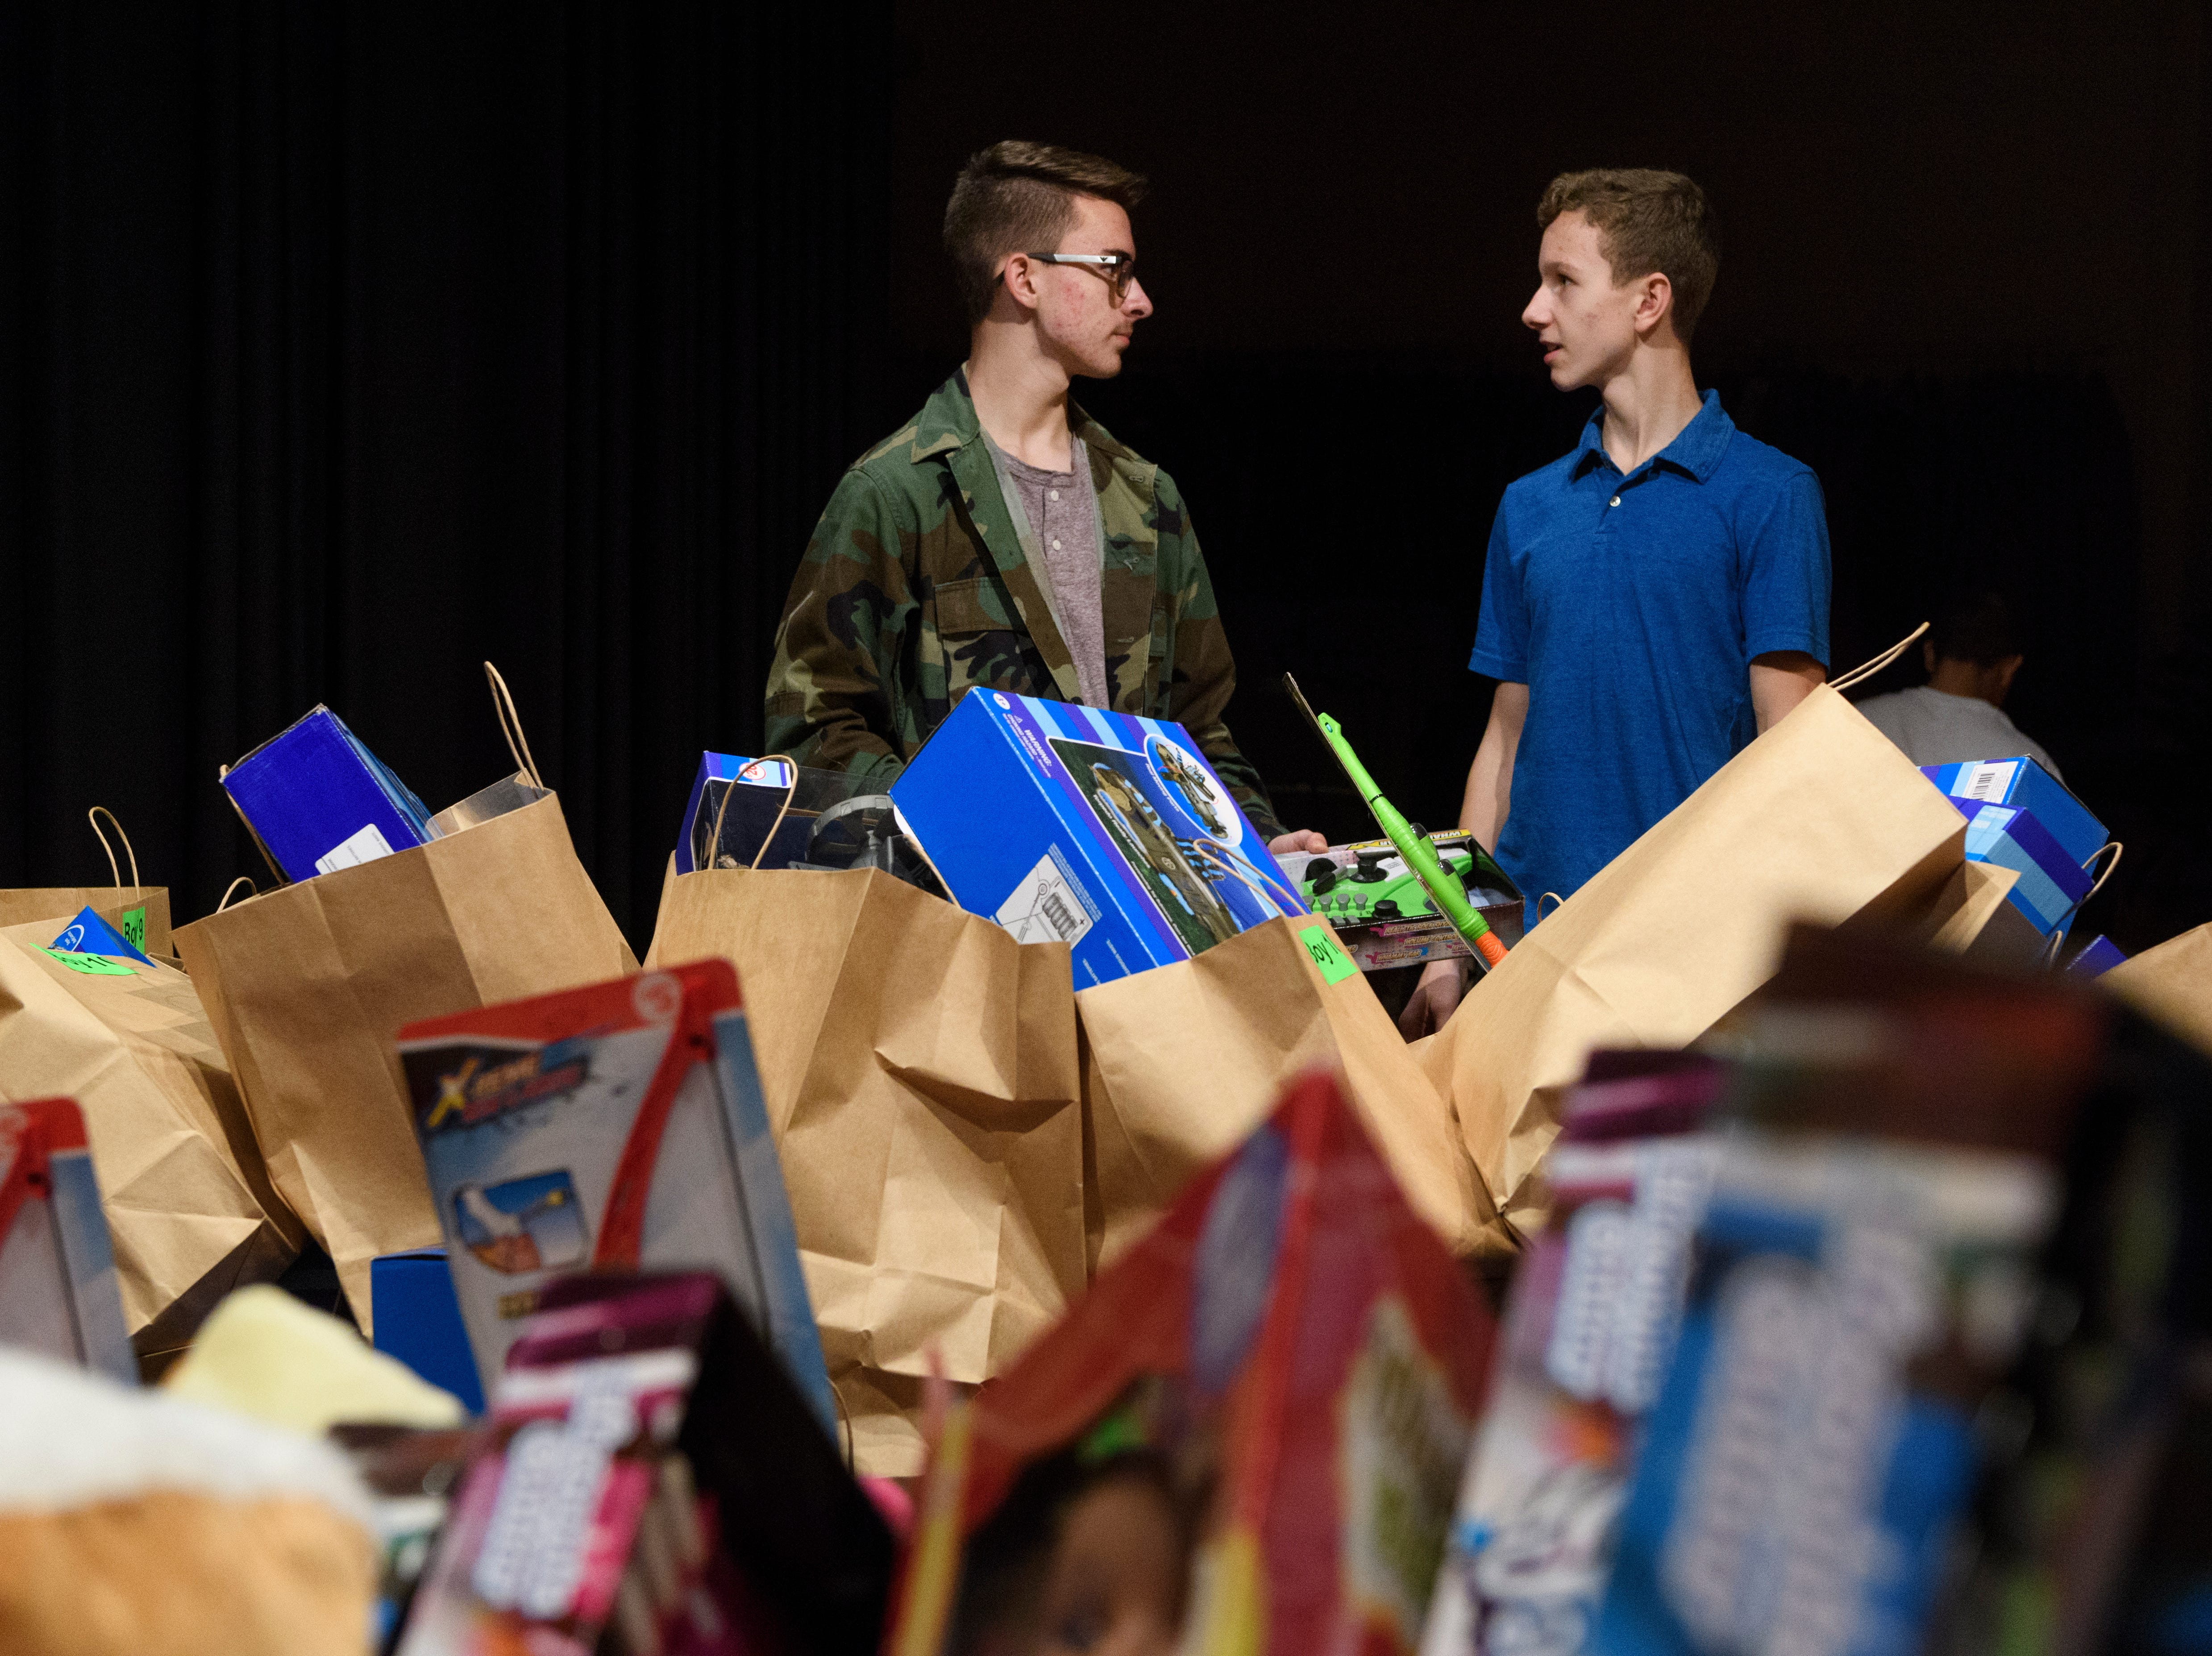 Dayton Spille, left, and Blain Krampe, right, both 15, organize bags full of toys for children, ages 4-11, to give out during the Goodfellows Christmas party at South Middle School in Henderson, Ky., Sunday, Dec. 16, 2018.